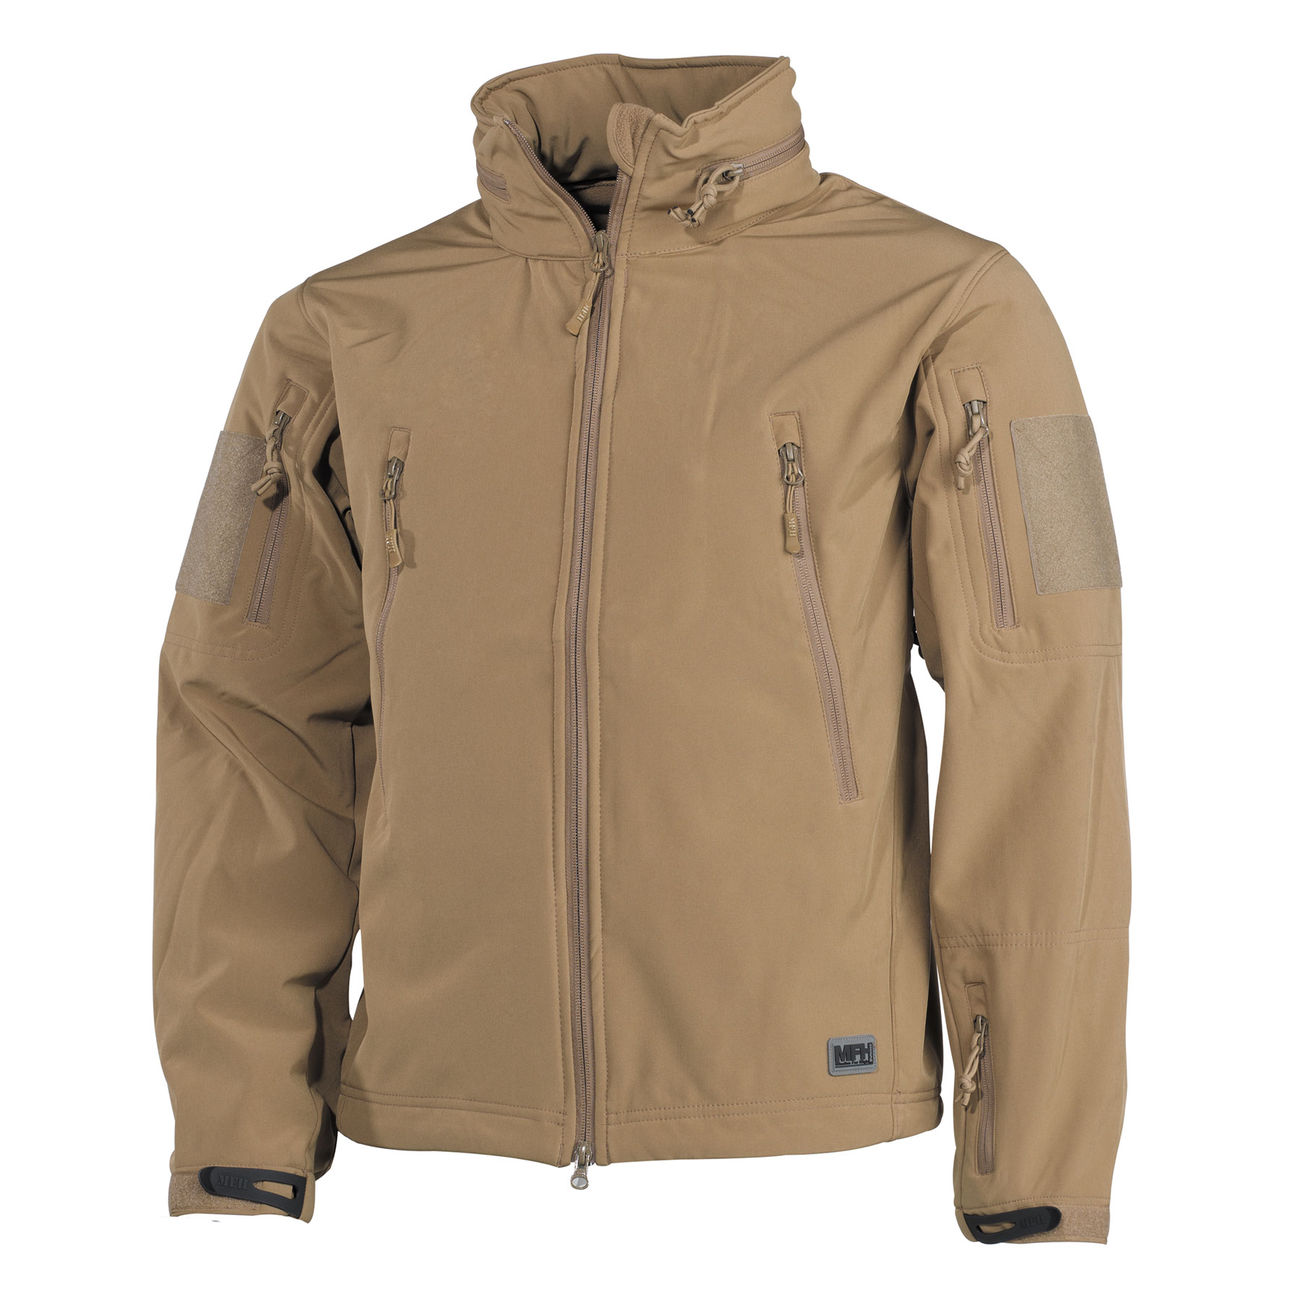 MFH Softshell Jacke Scorpion coyote 0